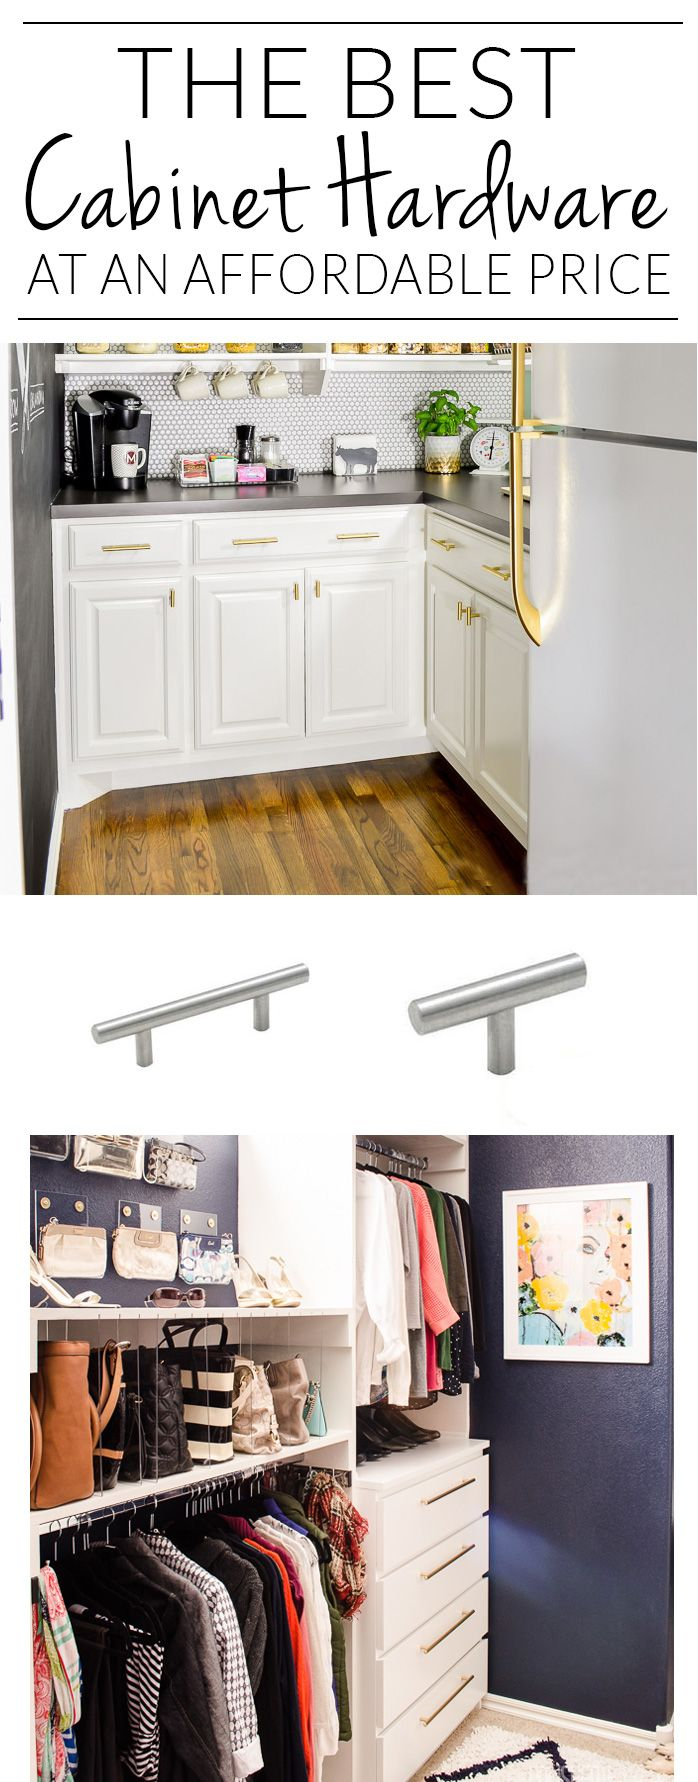 45 best Walk in pantry ideas images on Pinterest | Pantry room ...